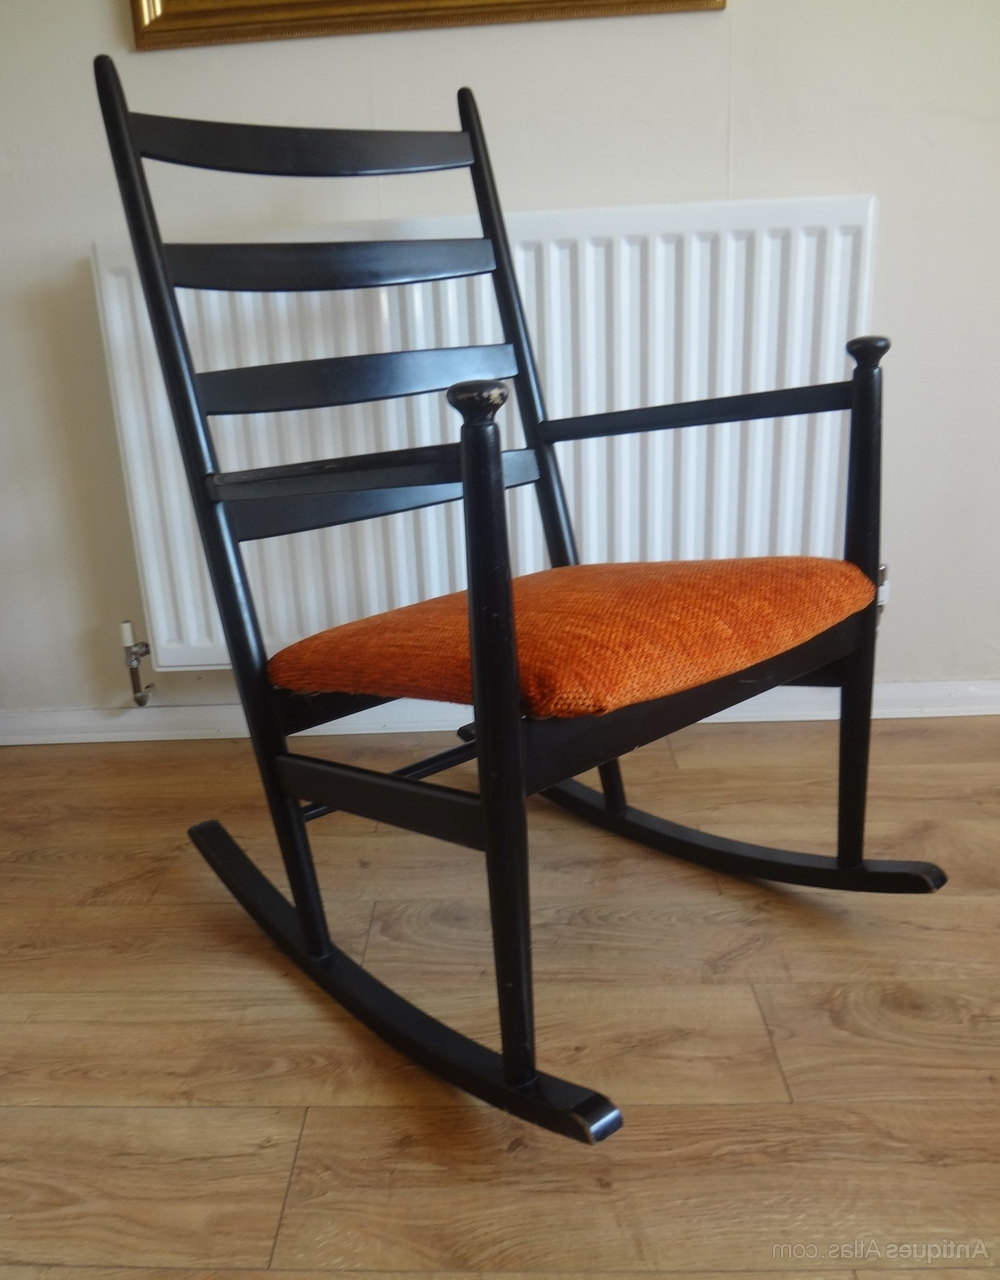 Antiques Atlas – Retro Danish Rocking Chair Inside Popular Retro Rocking Chairs (View 12 of 15)